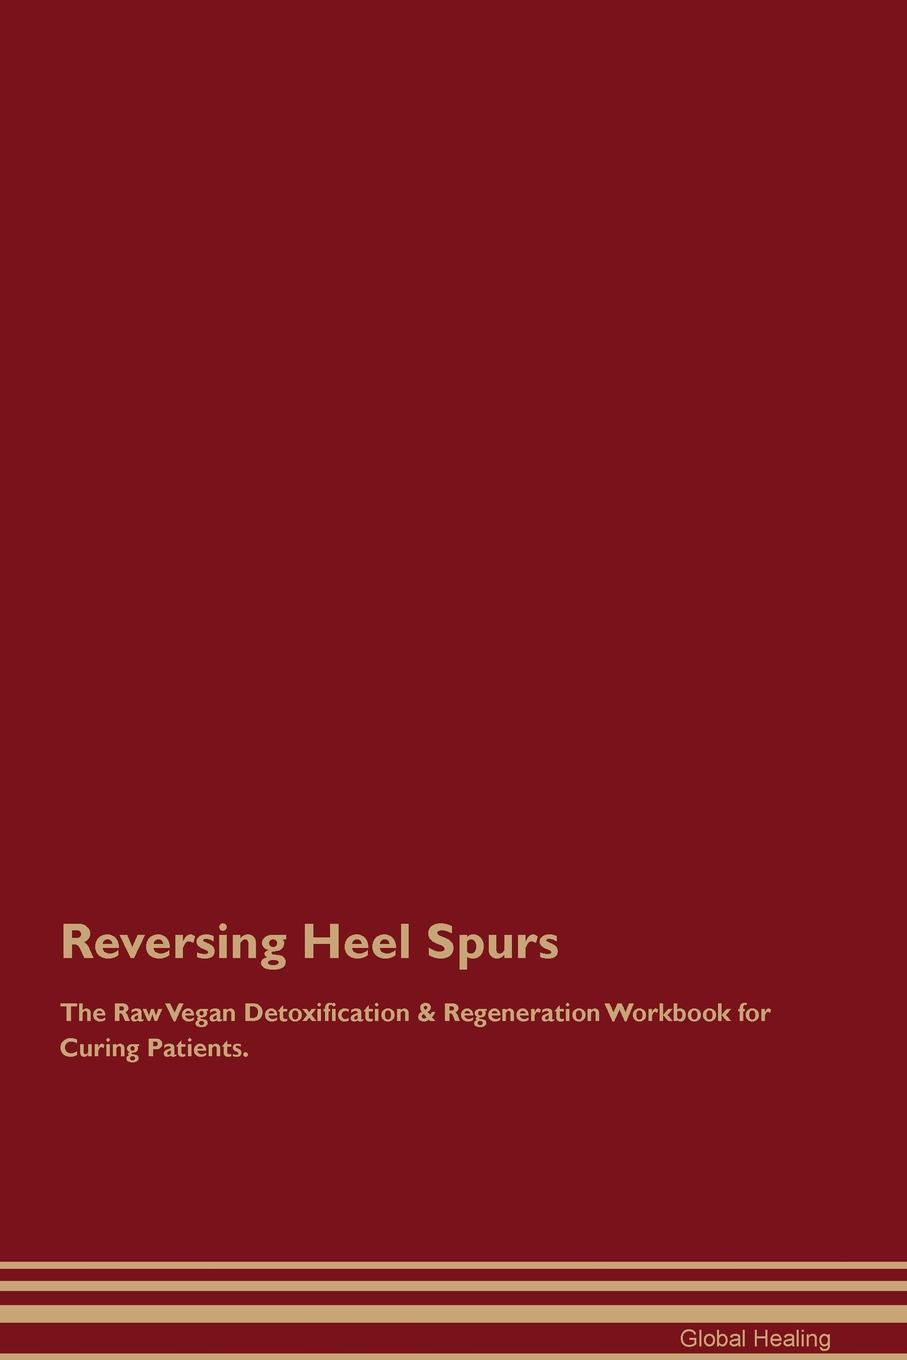 Reversing Heel Spurs The Raw Vegan Detoxification & Regeneration Workbook for Curing Patients